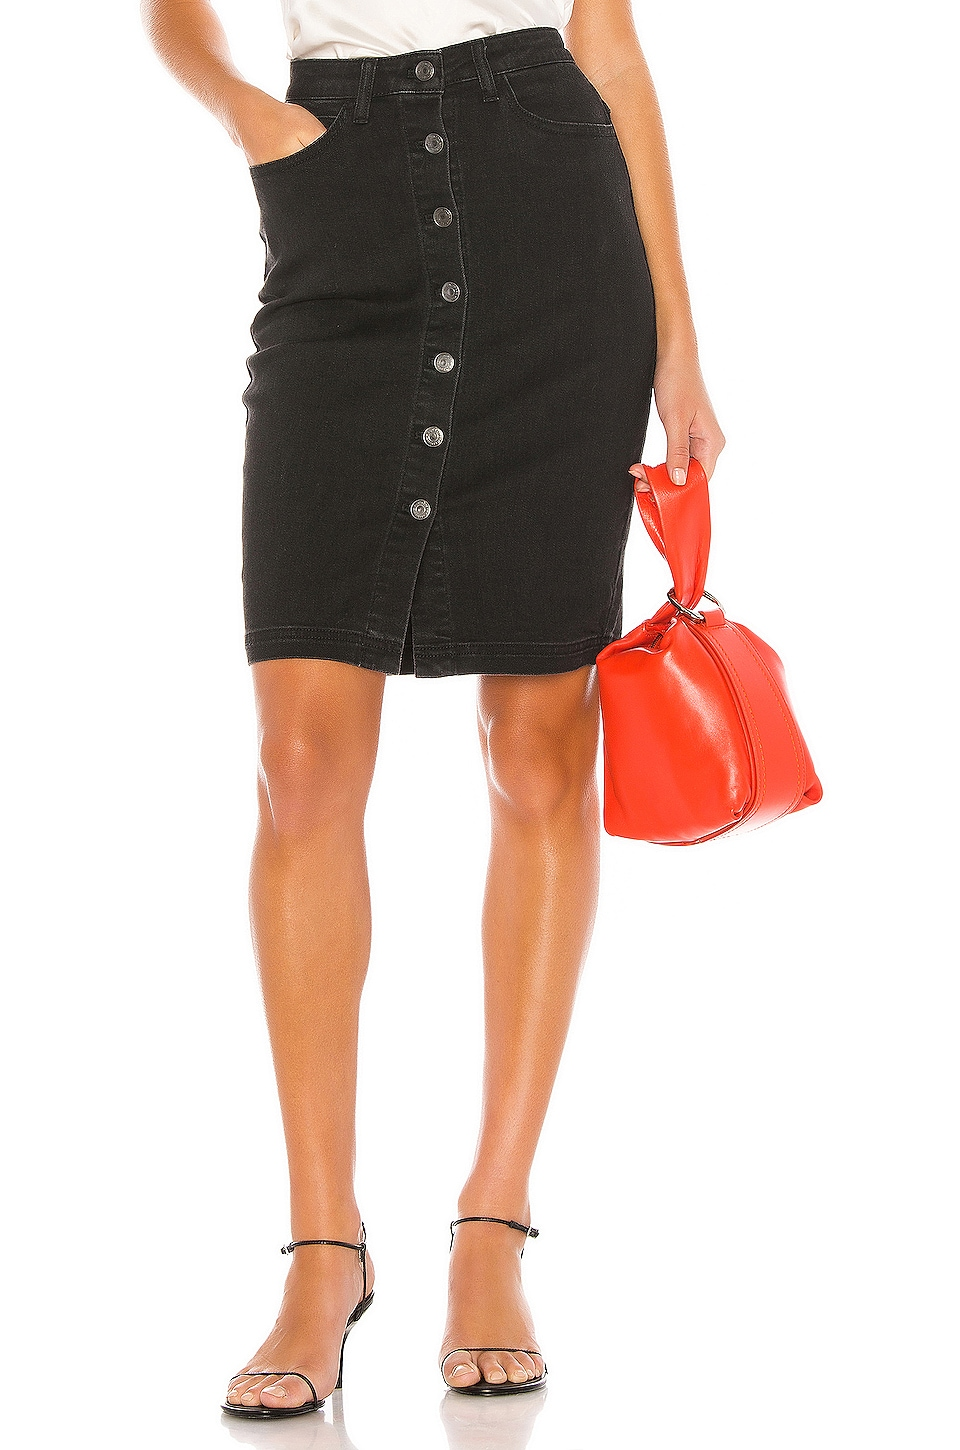 cupcakes and cashmere Illona Denim Pencil Skirt in Black